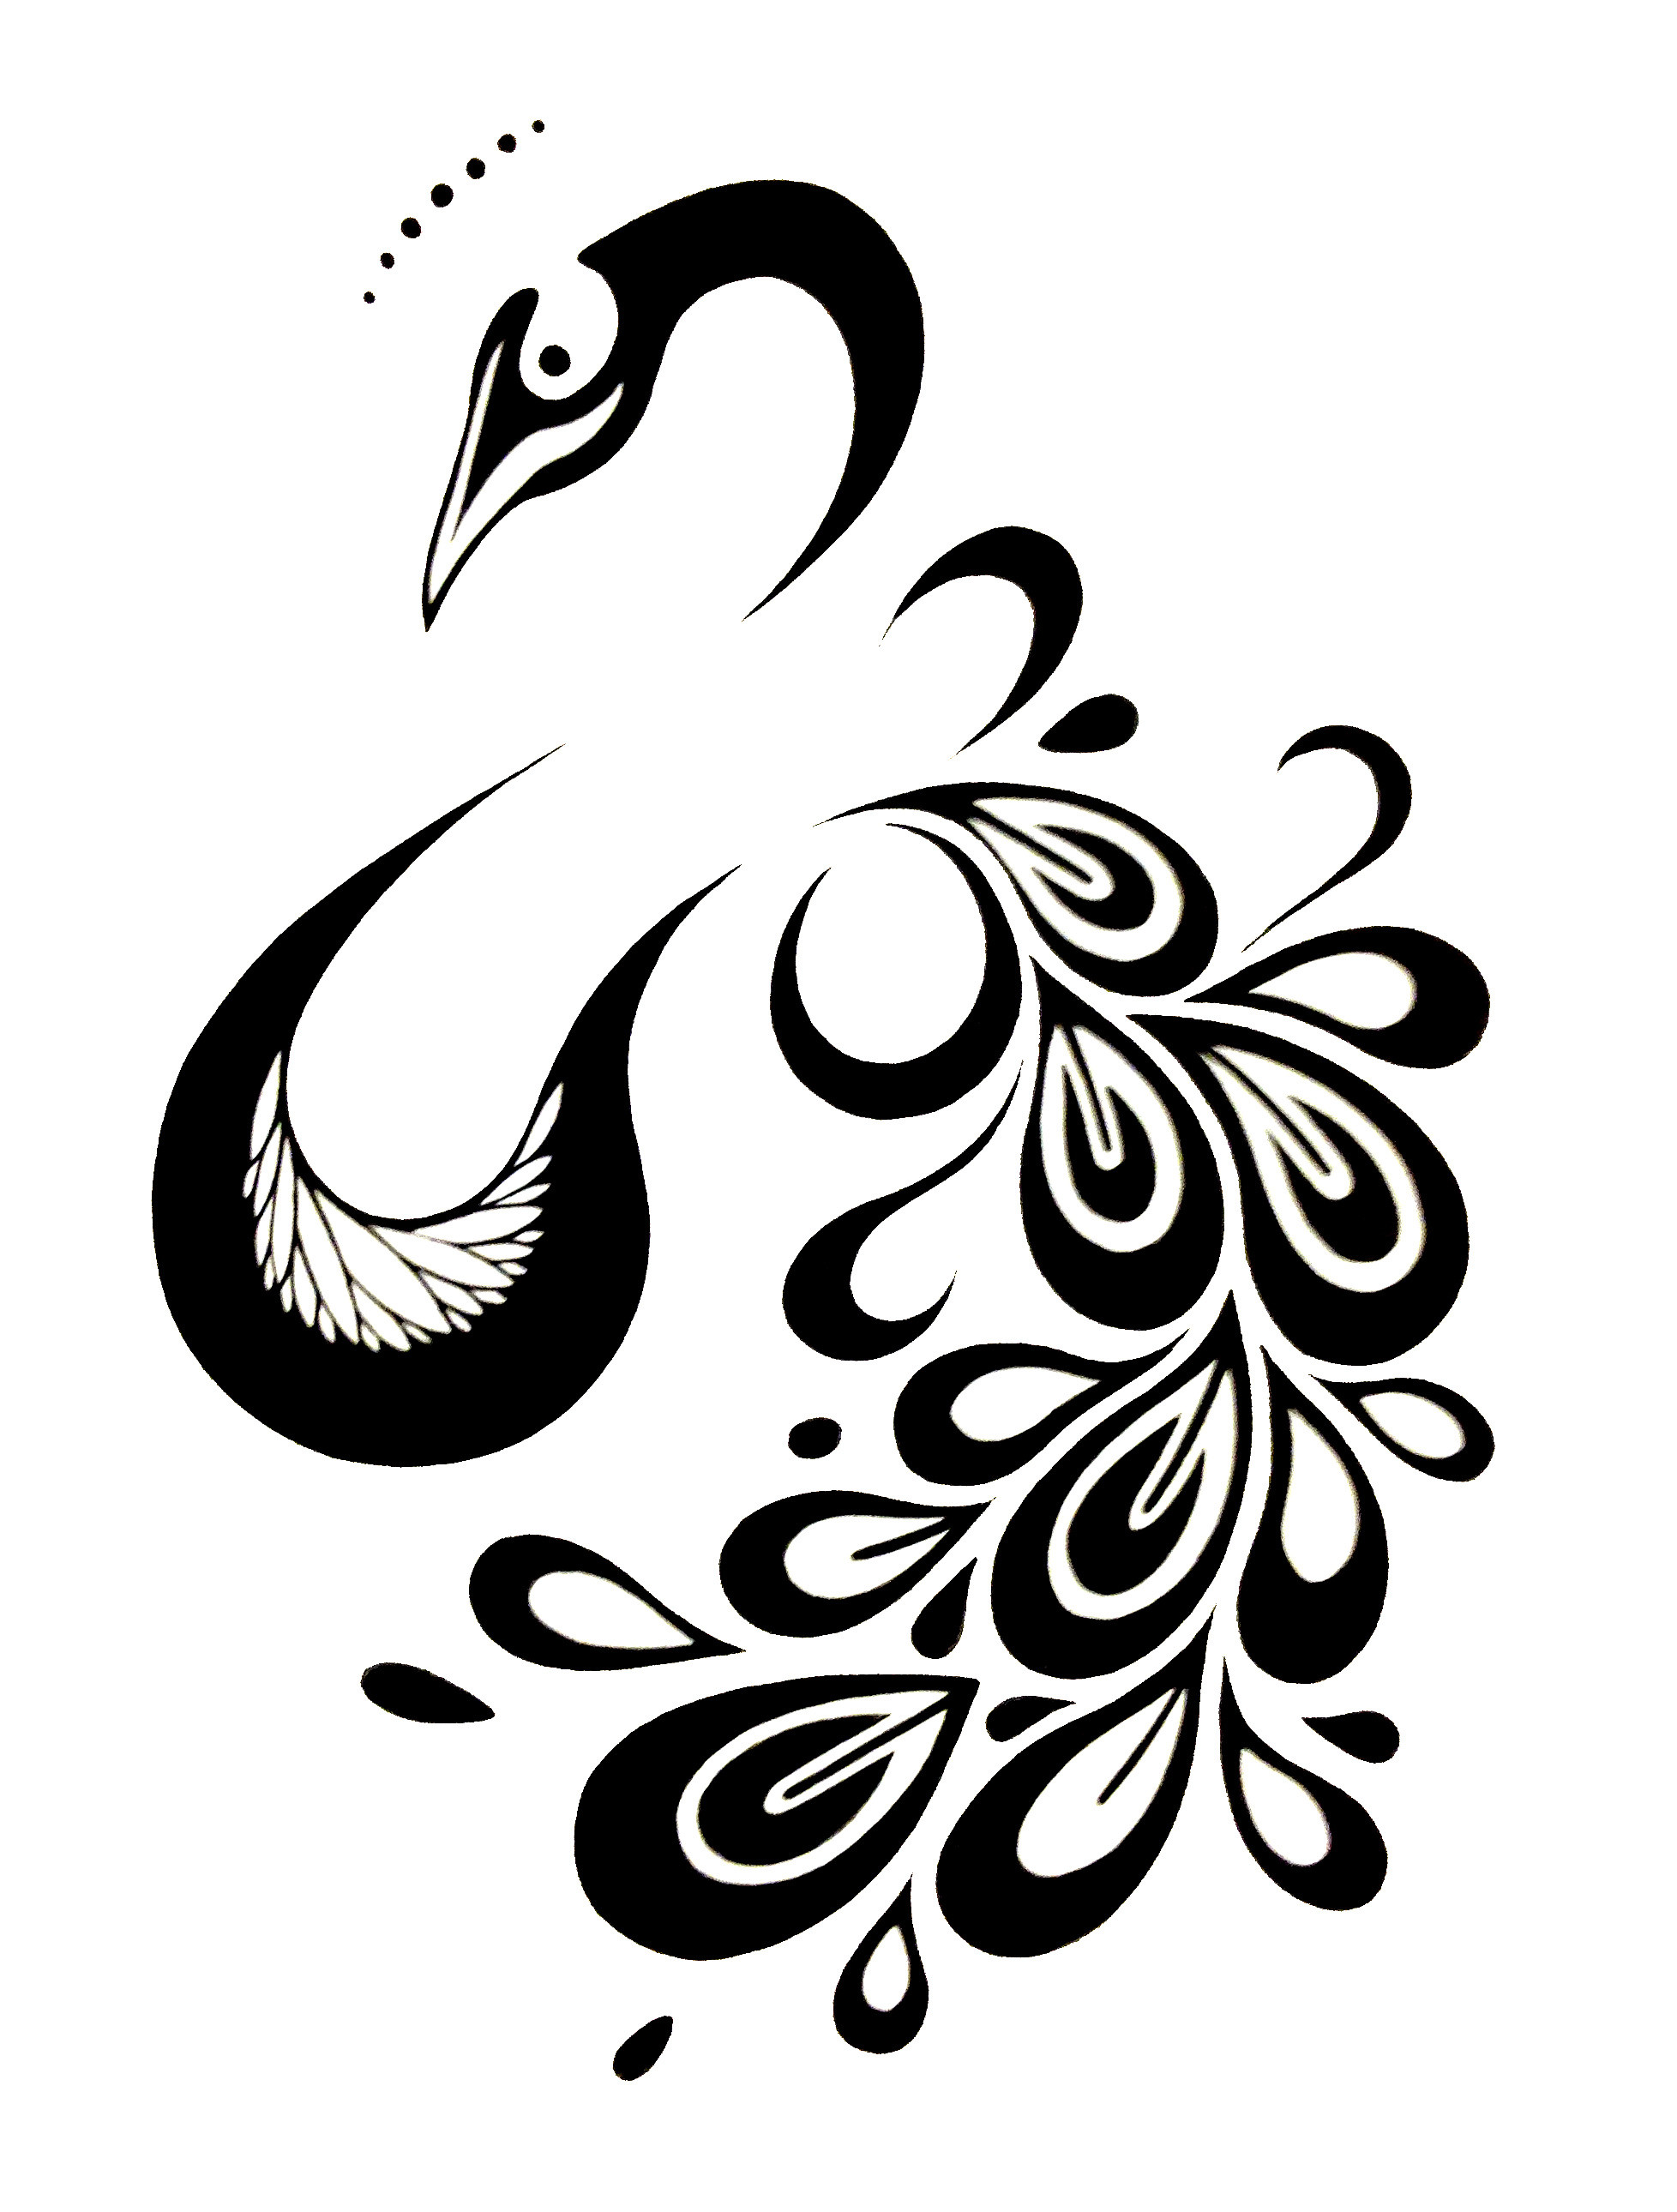 Free Black And White Peacock Designs Download Free Clip